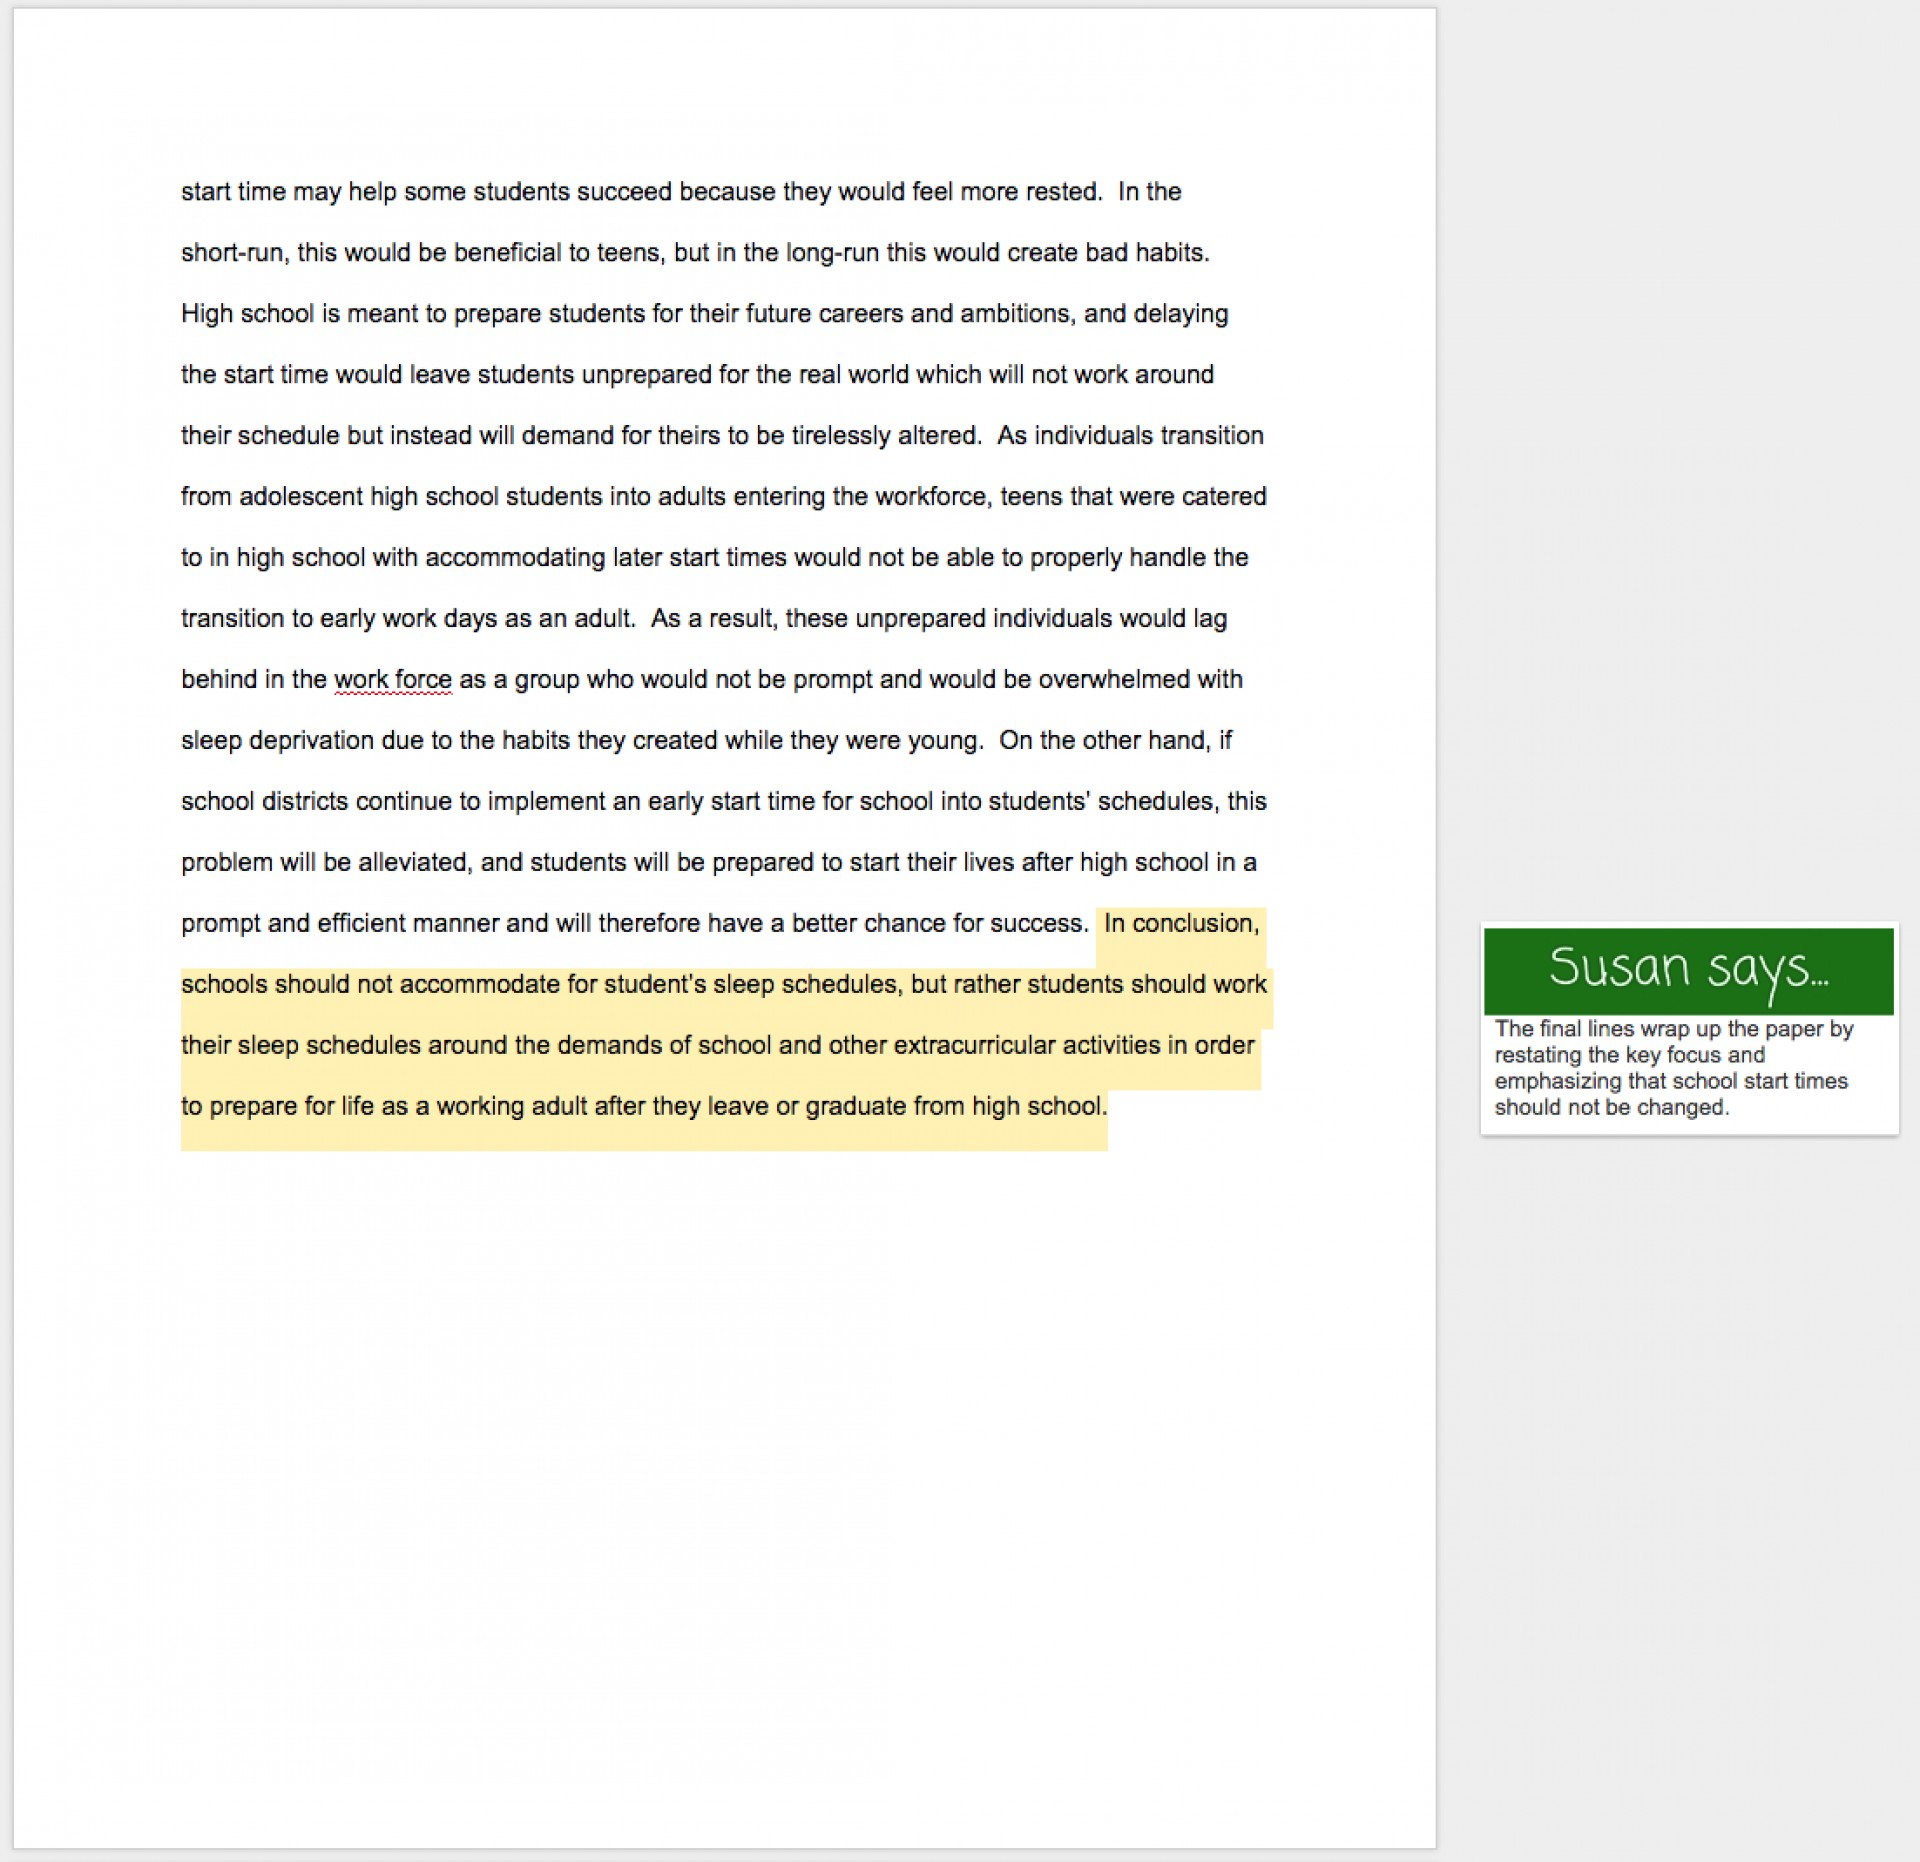 006 Essay Example How To Conclude An Top Argumentative Teach Me Write A Good Conclusion Paragraph For Step By Ppt Middle School 1920